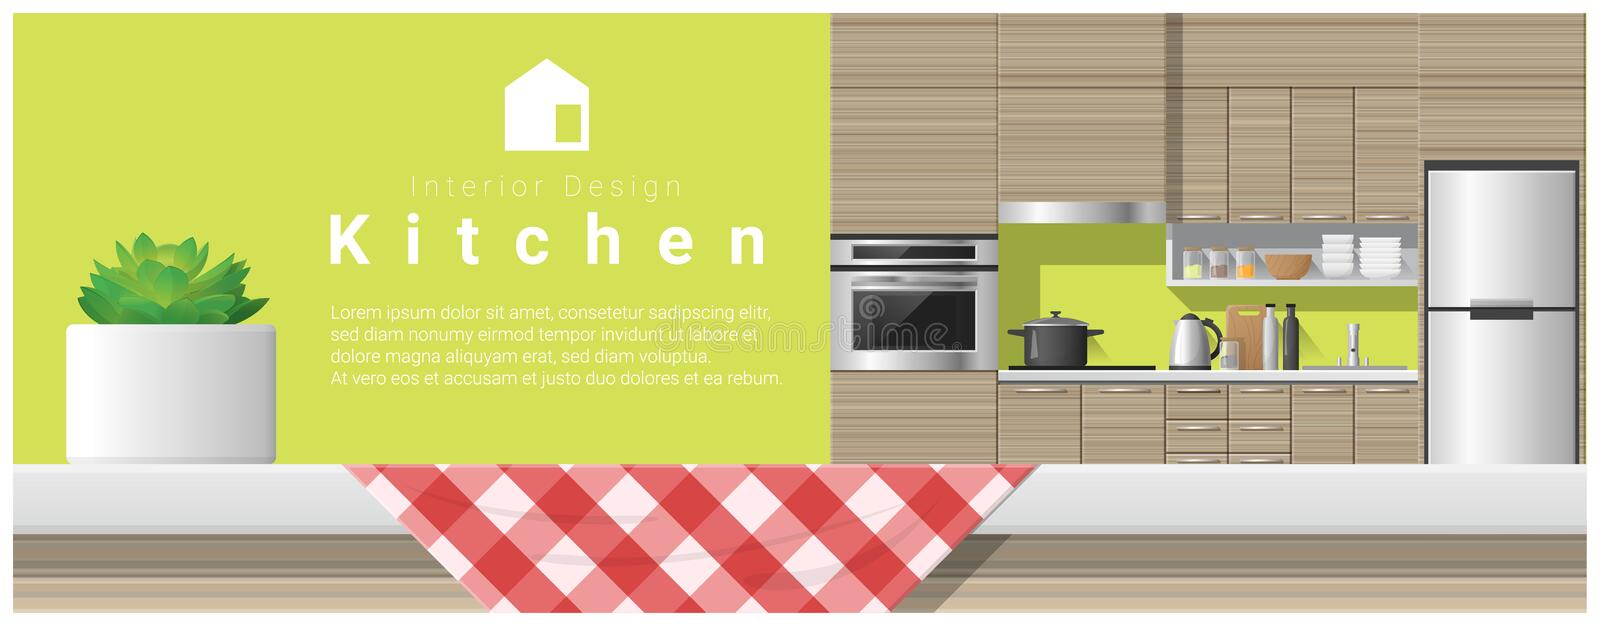 Interior design with table top and Modern kitchen background vector illustration